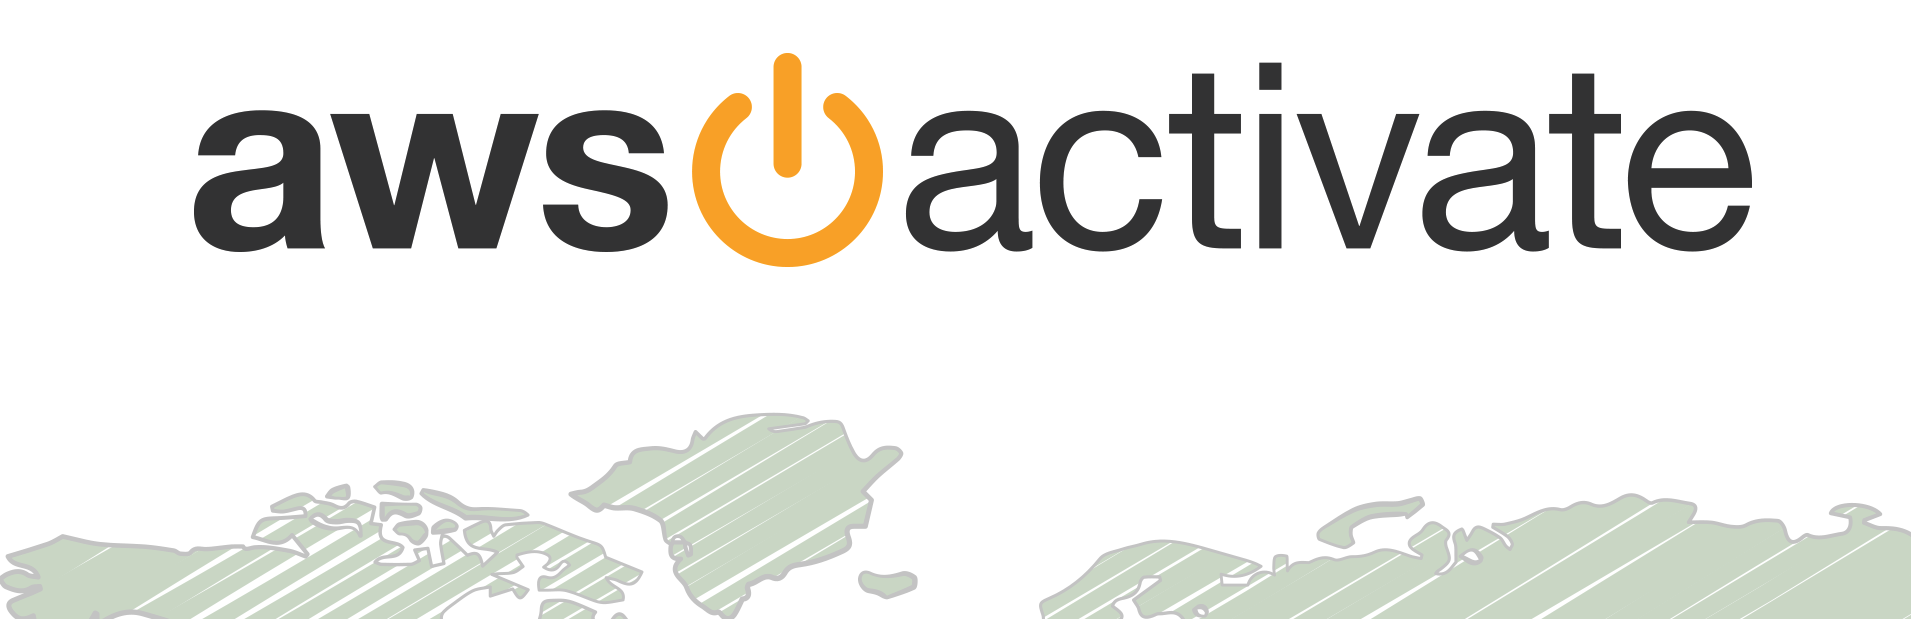 AWS_Activate_for_slideshow_crop2